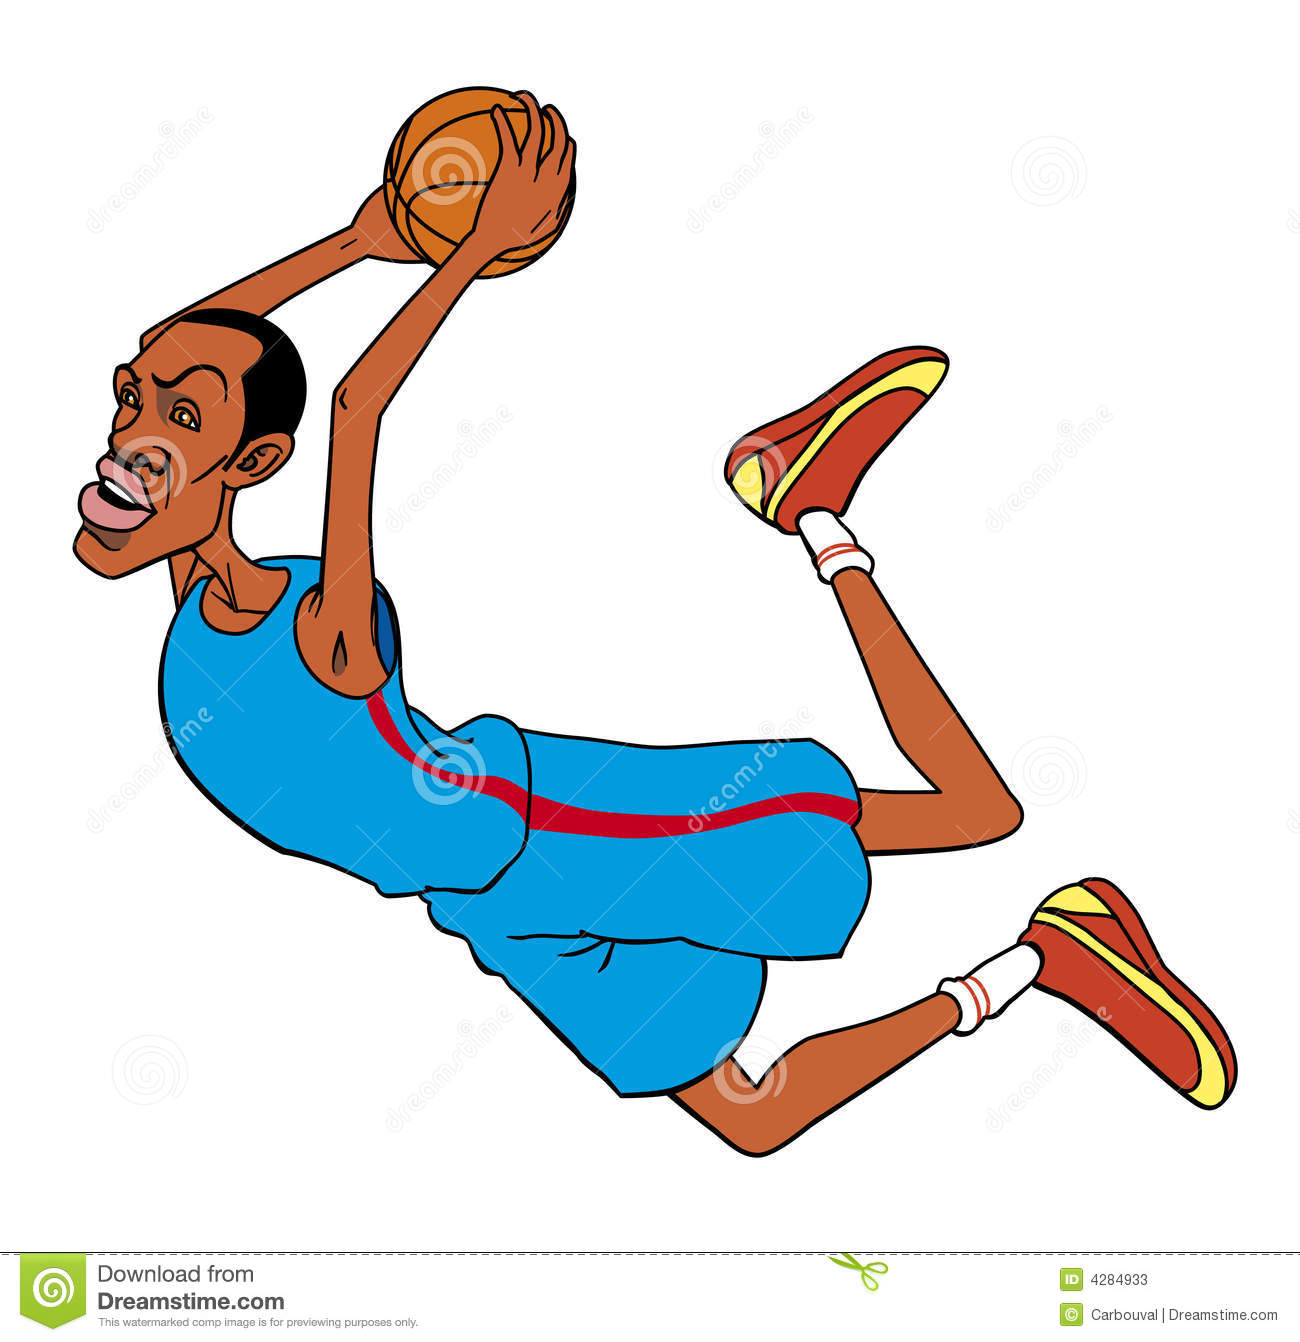 Basketball Player Cartoon Stock Photos - Image: 4284933